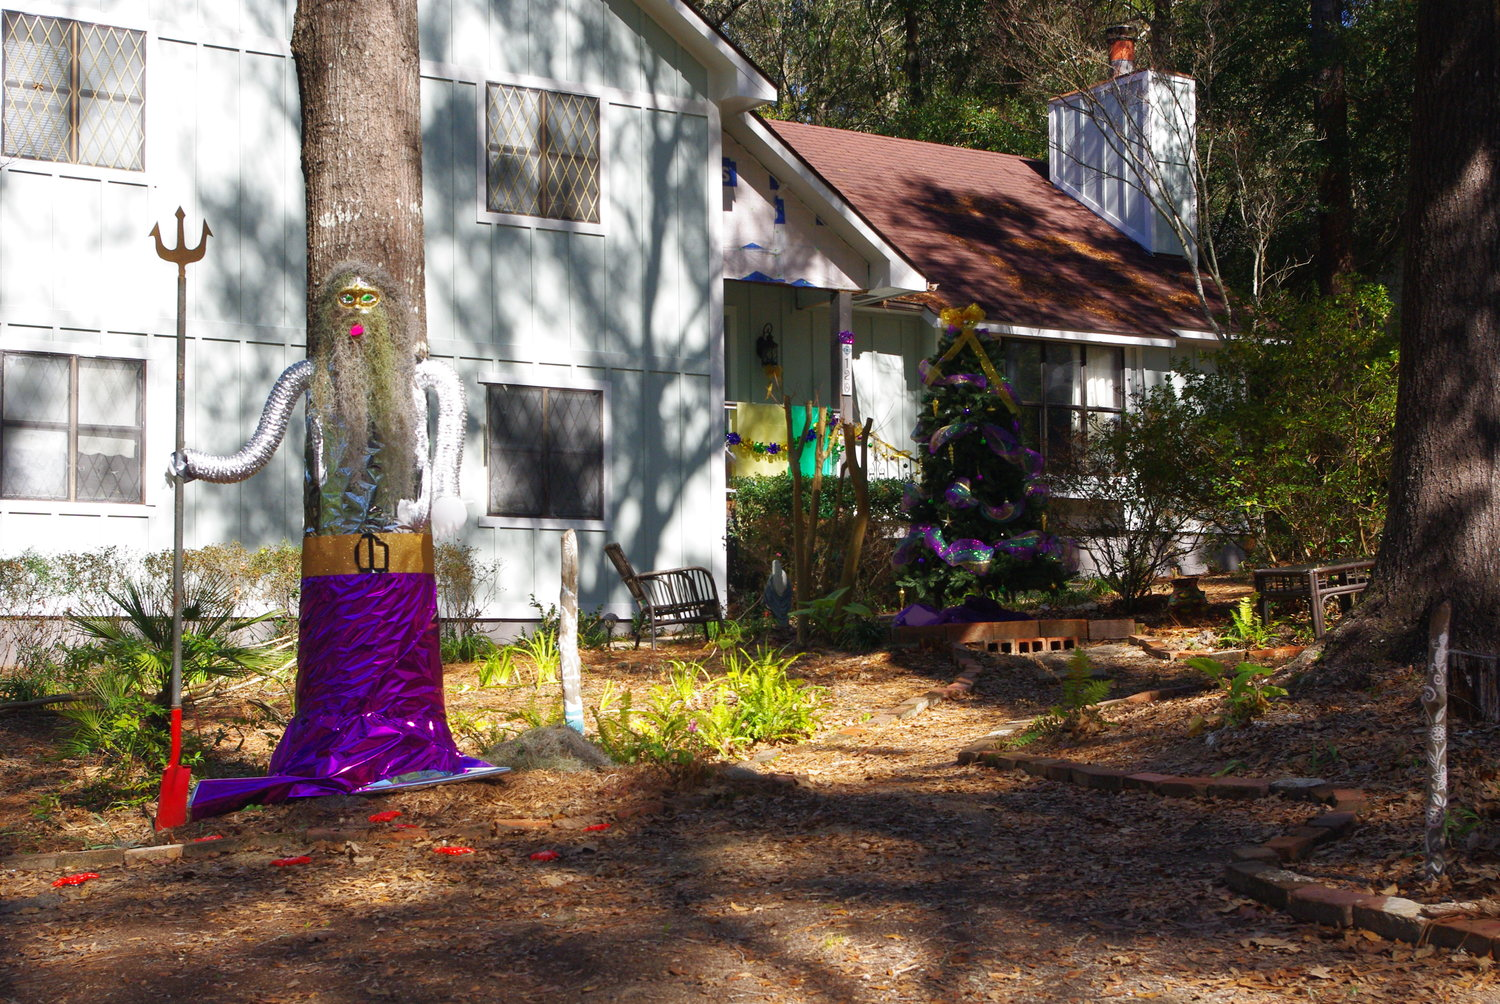 Mardi Gras decorations on the Eastern Shore.